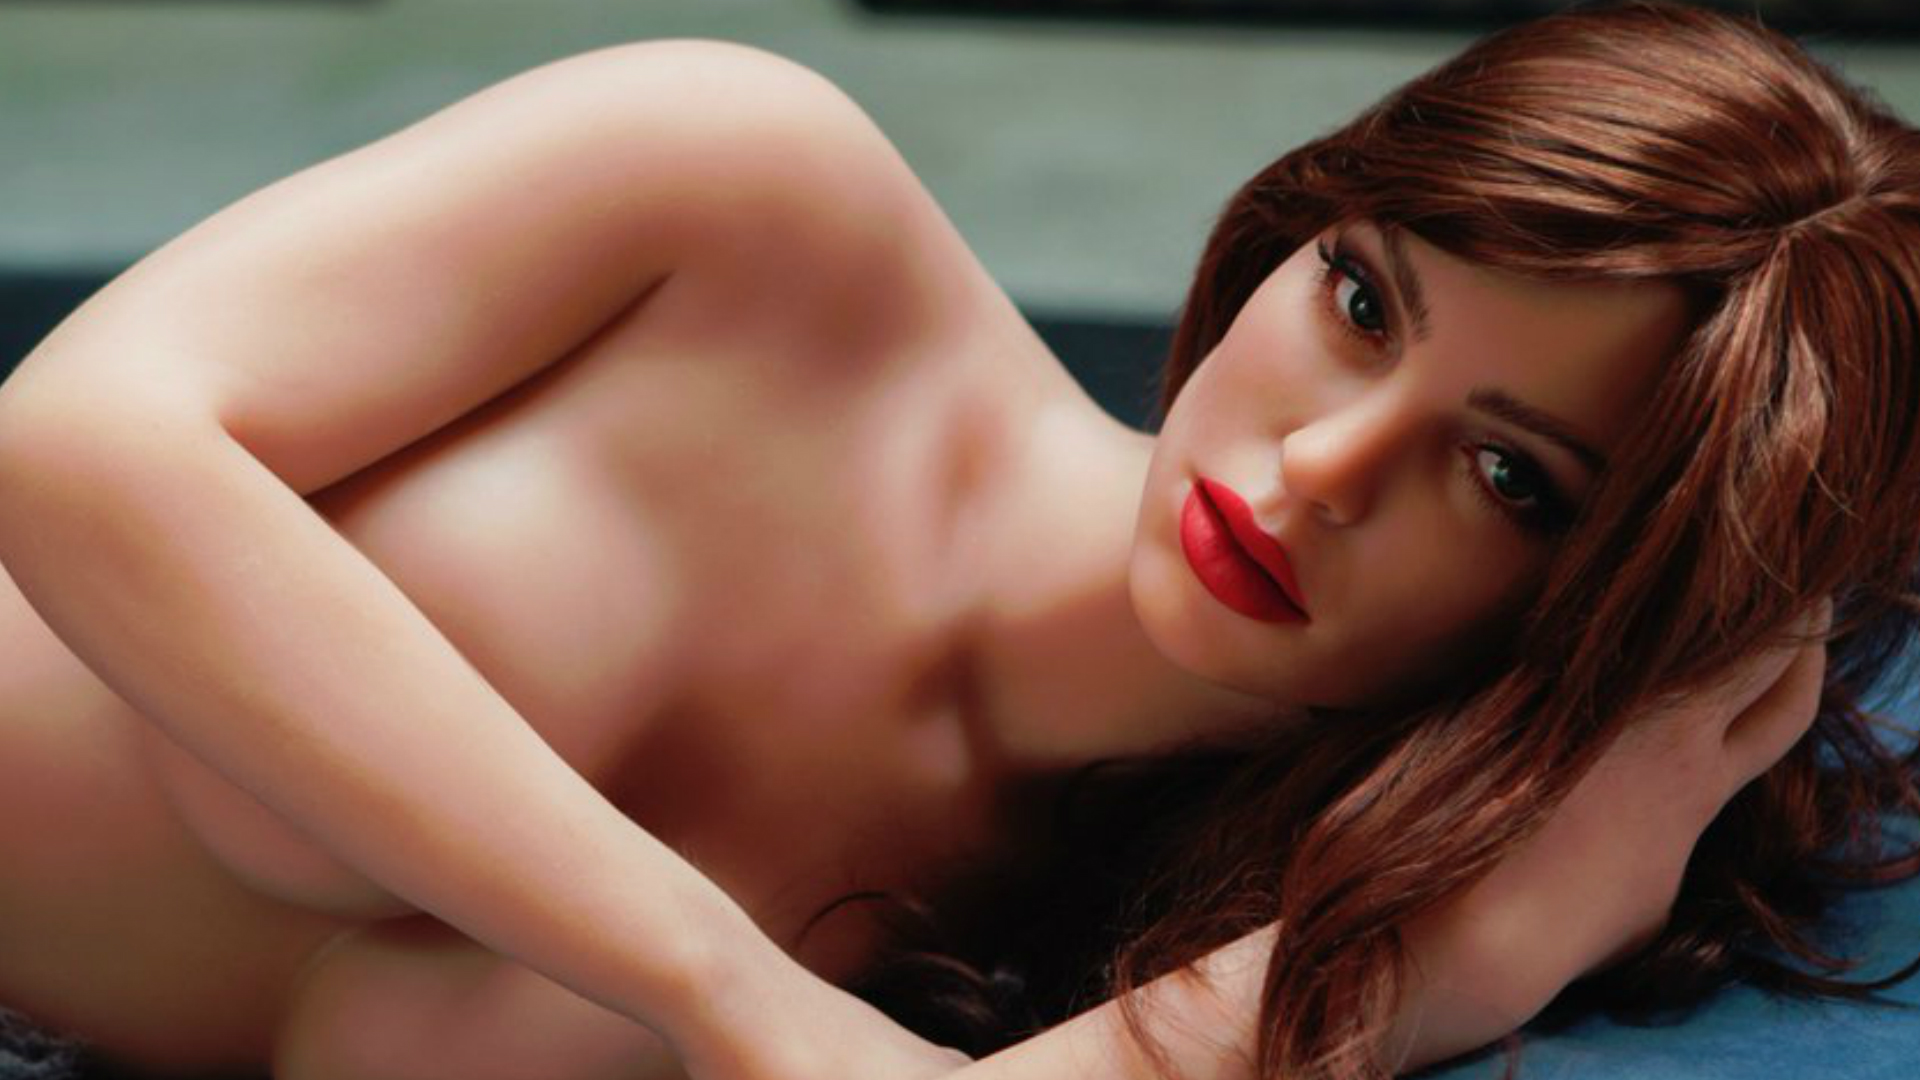 RealDoll's Sex Doll